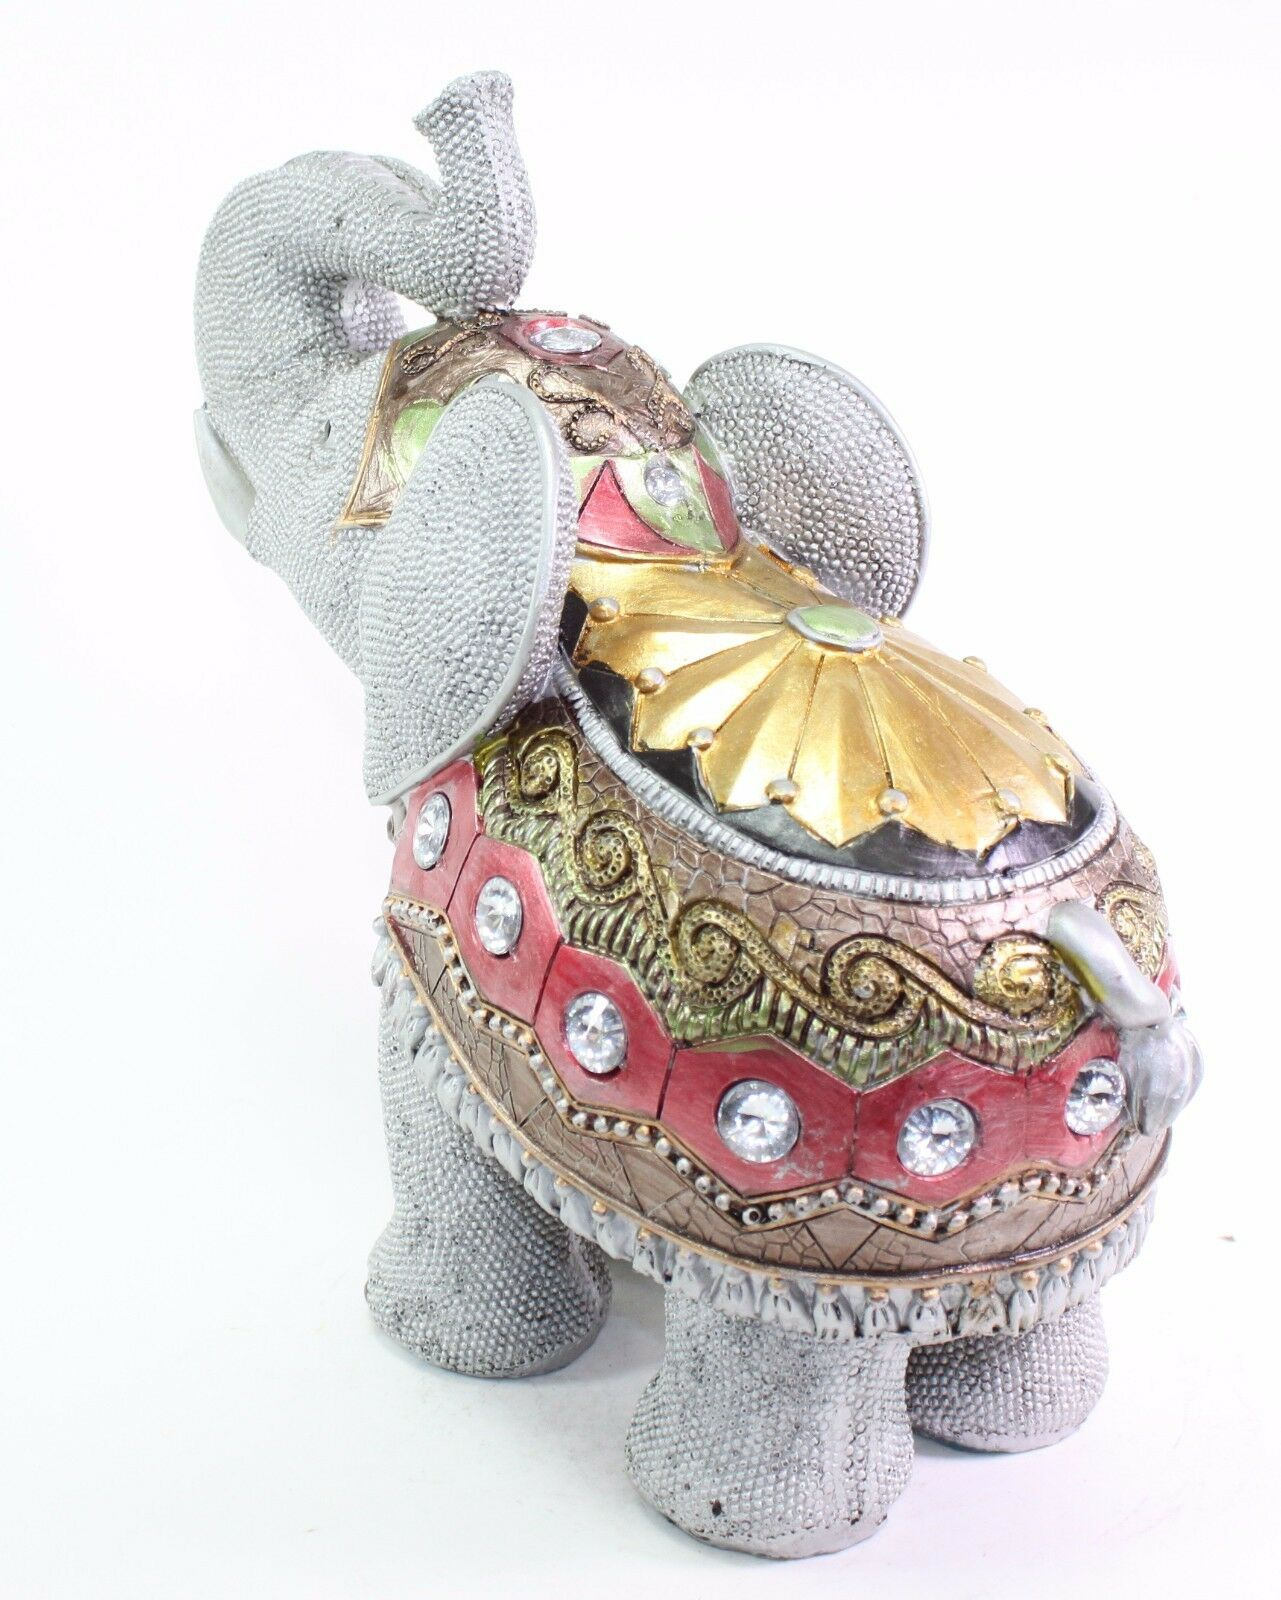 feng shui 10 gray elephant trunk statue lucky figurine gift home decor 4861653173802 ebay. Black Bedroom Furniture Sets. Home Design Ideas